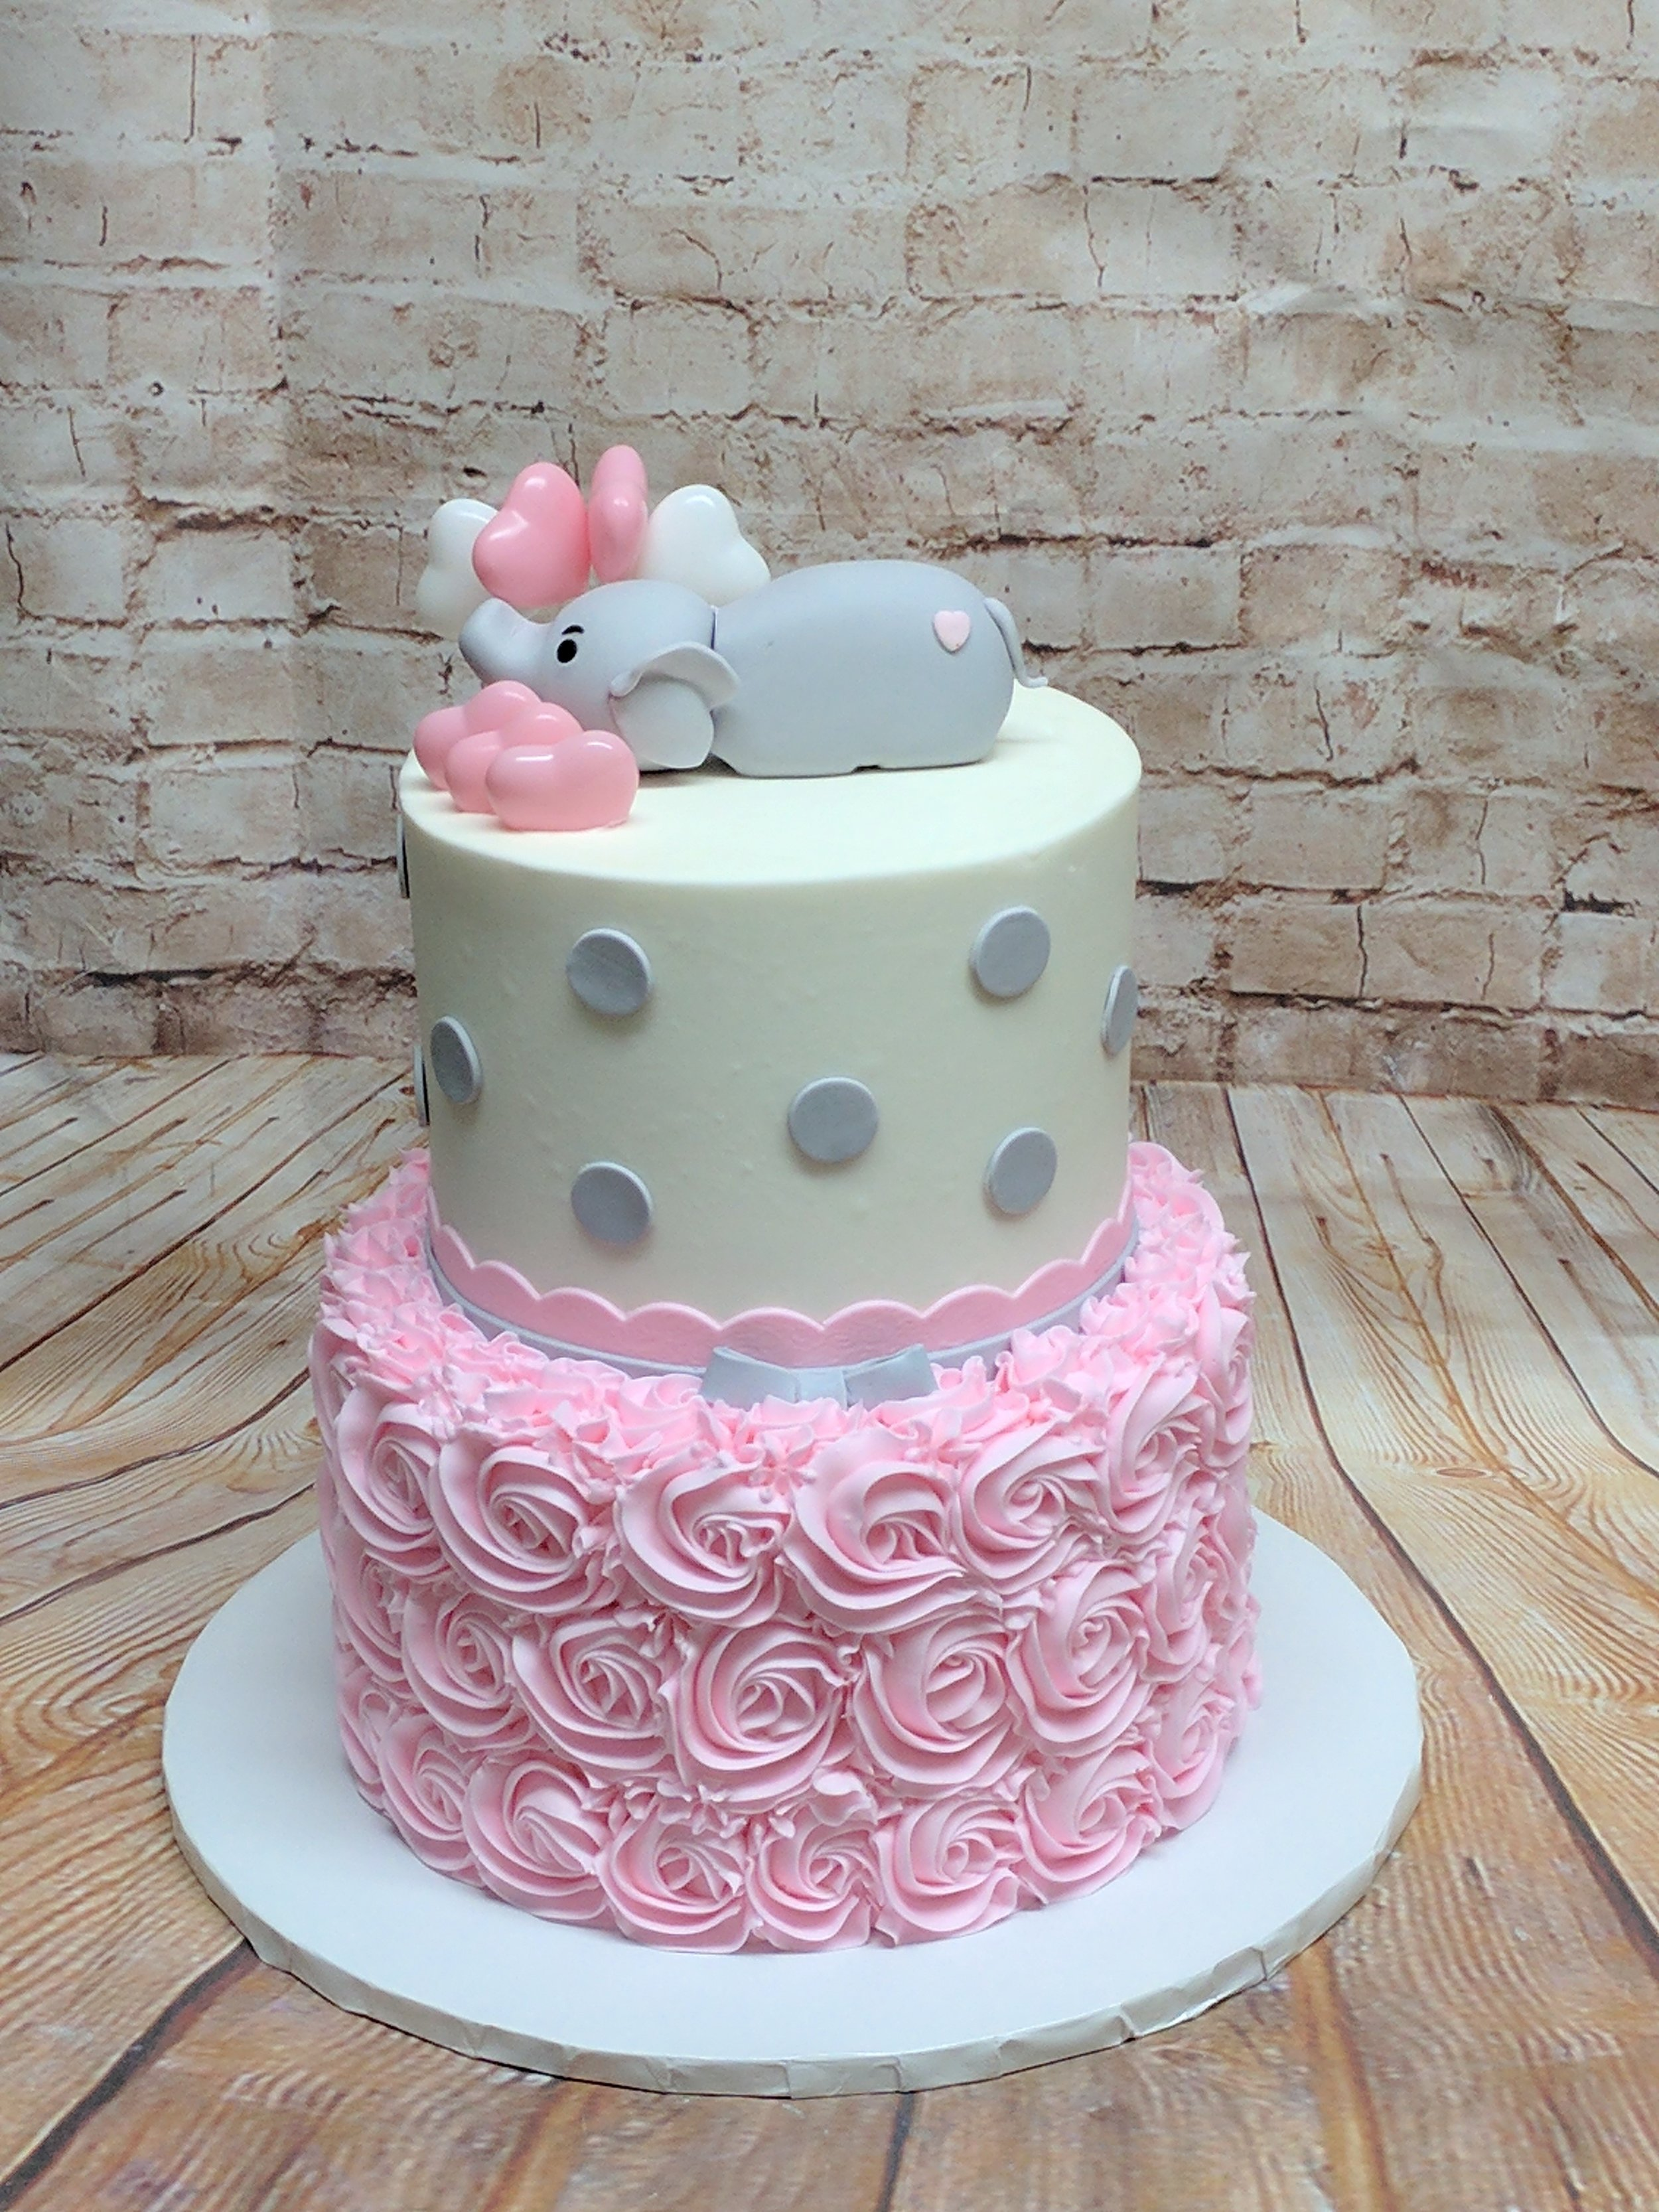 Pink Elephant Cake with Hearts .jpg